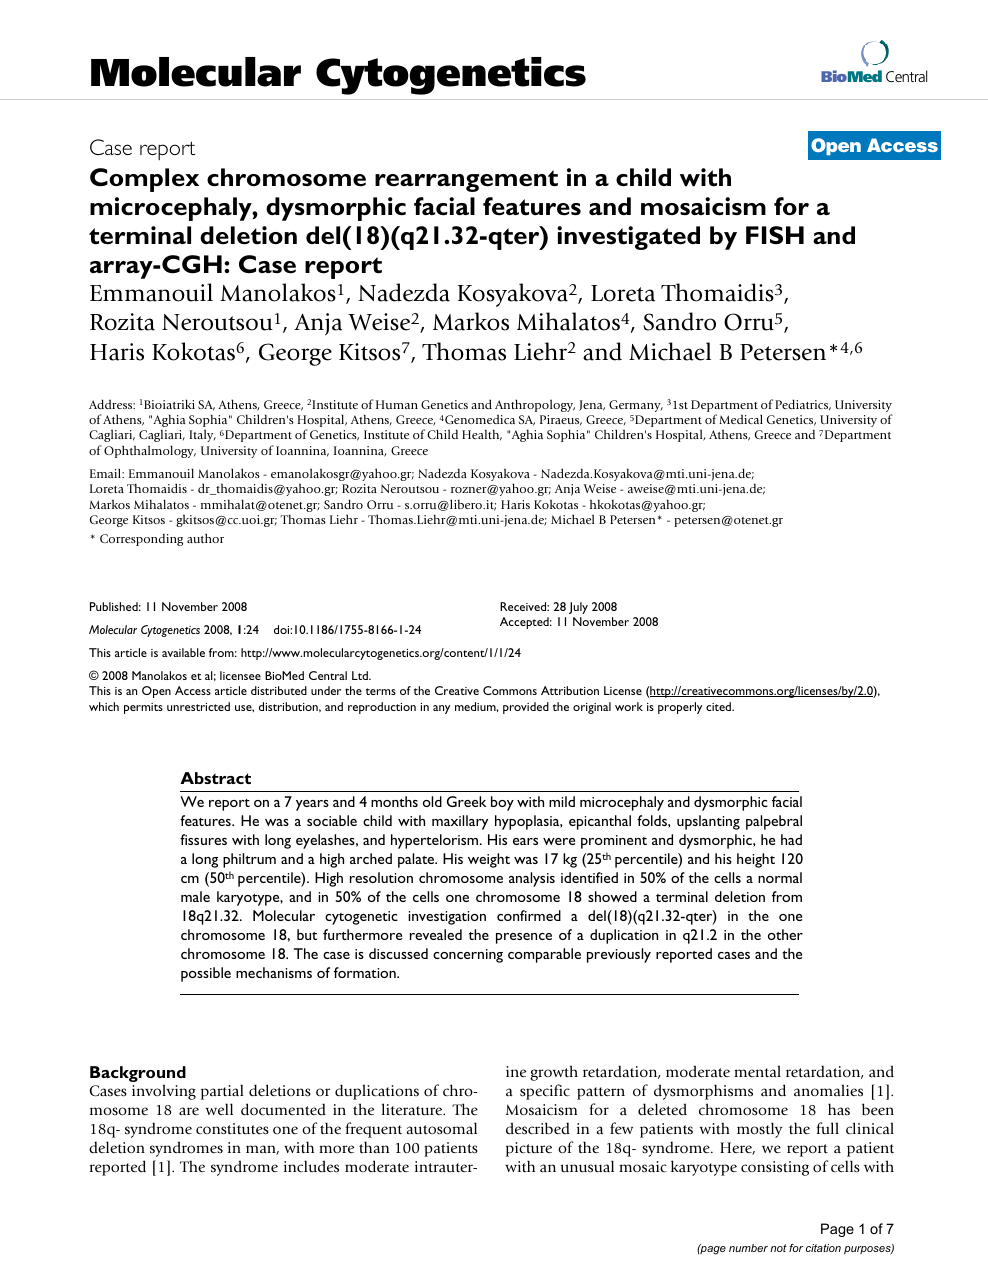 Complex chromosome rearrangement in a child with